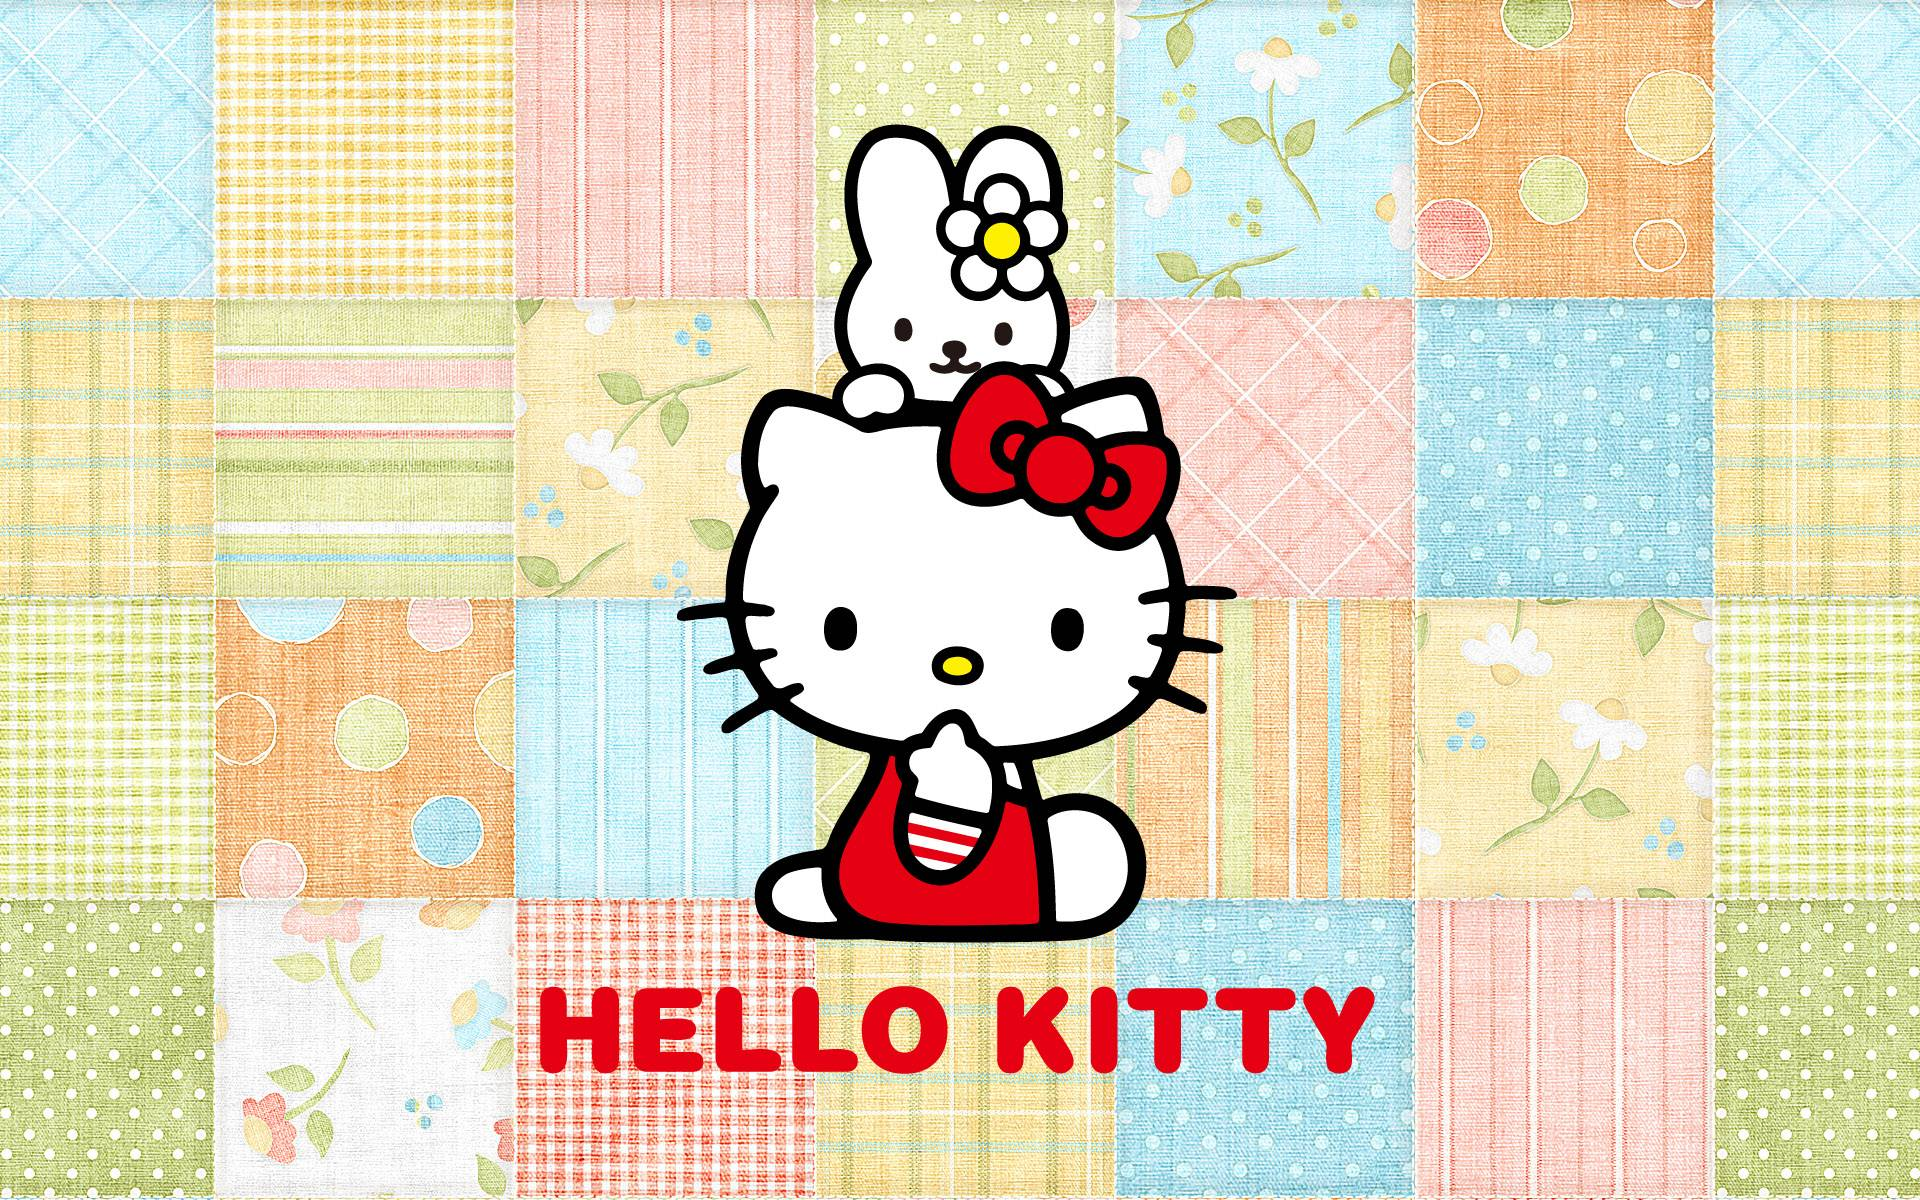 Hello Kitty Background Wallpapers WIN10 THEMES 1920x1200